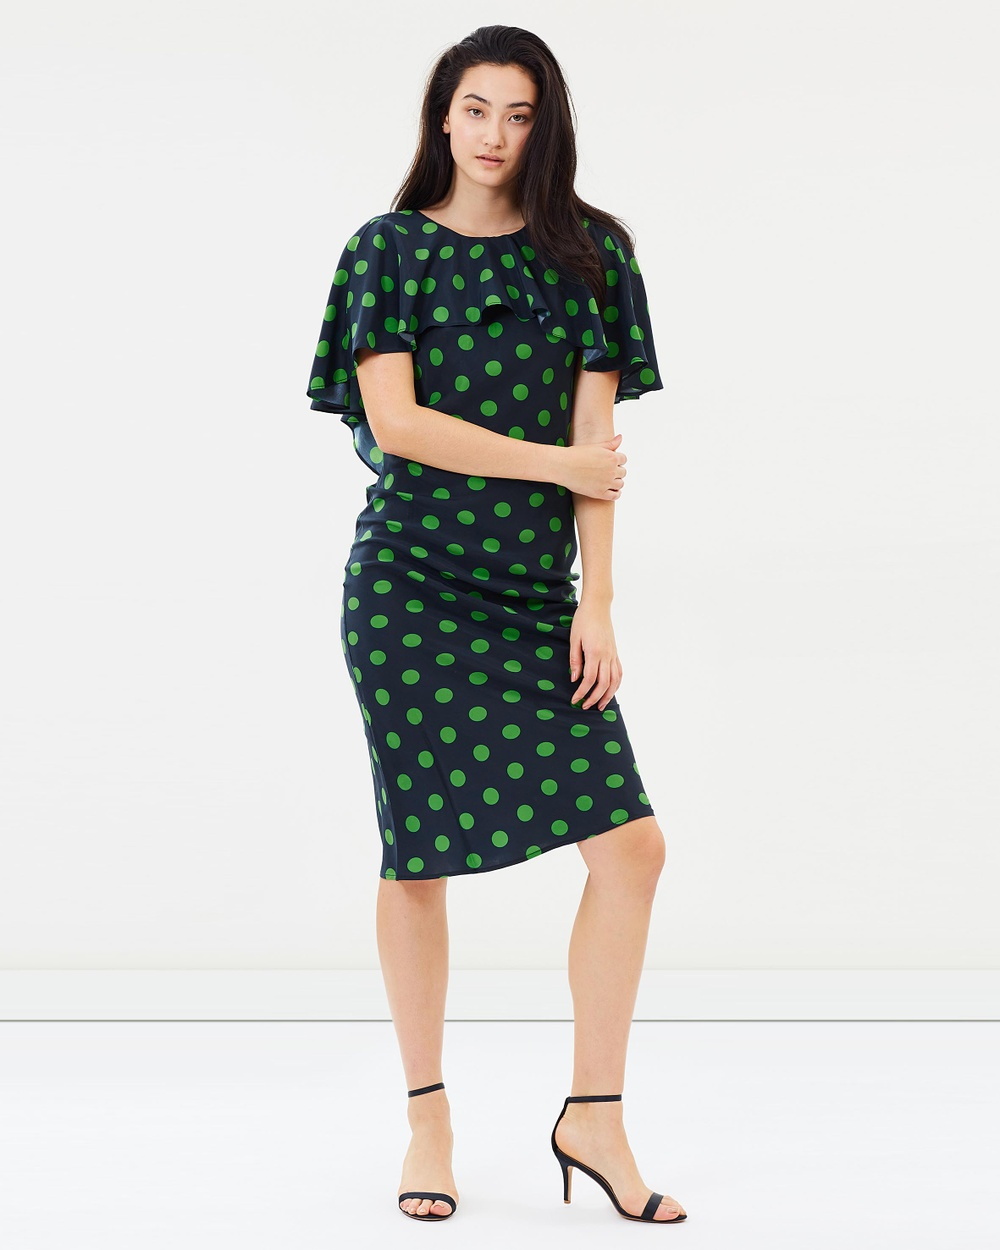 Gary Bigeni Jure Dress Printed Dresses Lime & Navy Polka Dots Print Jure Dress